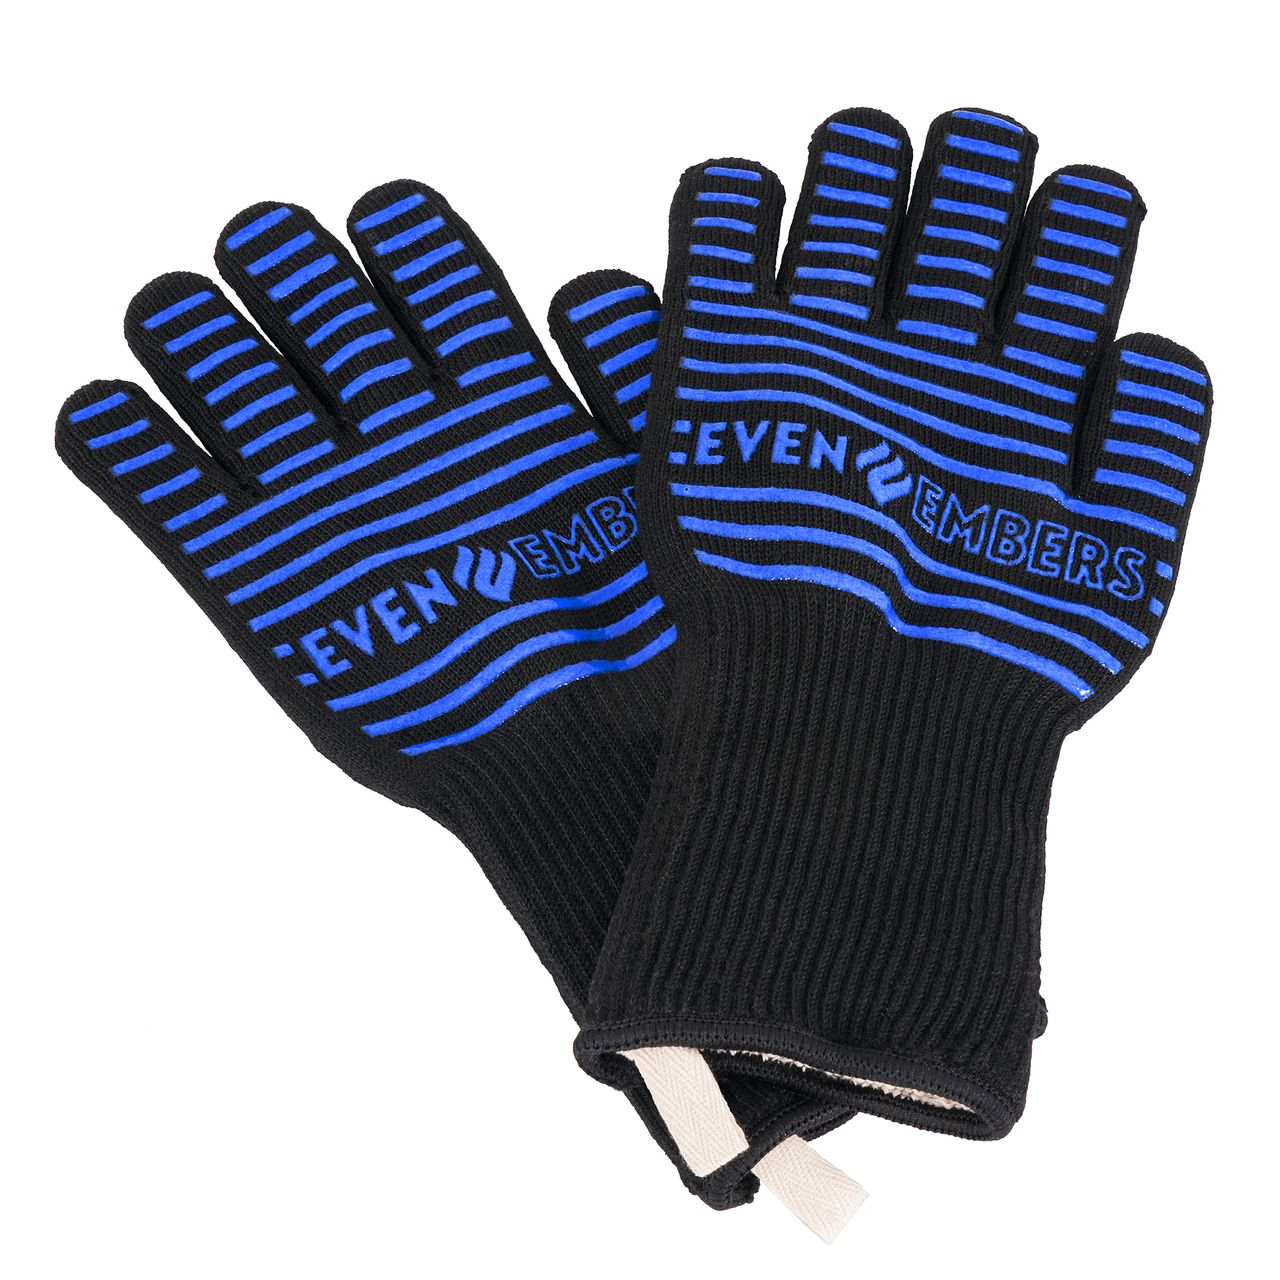 Even Embers BBQ Grilling Gloves